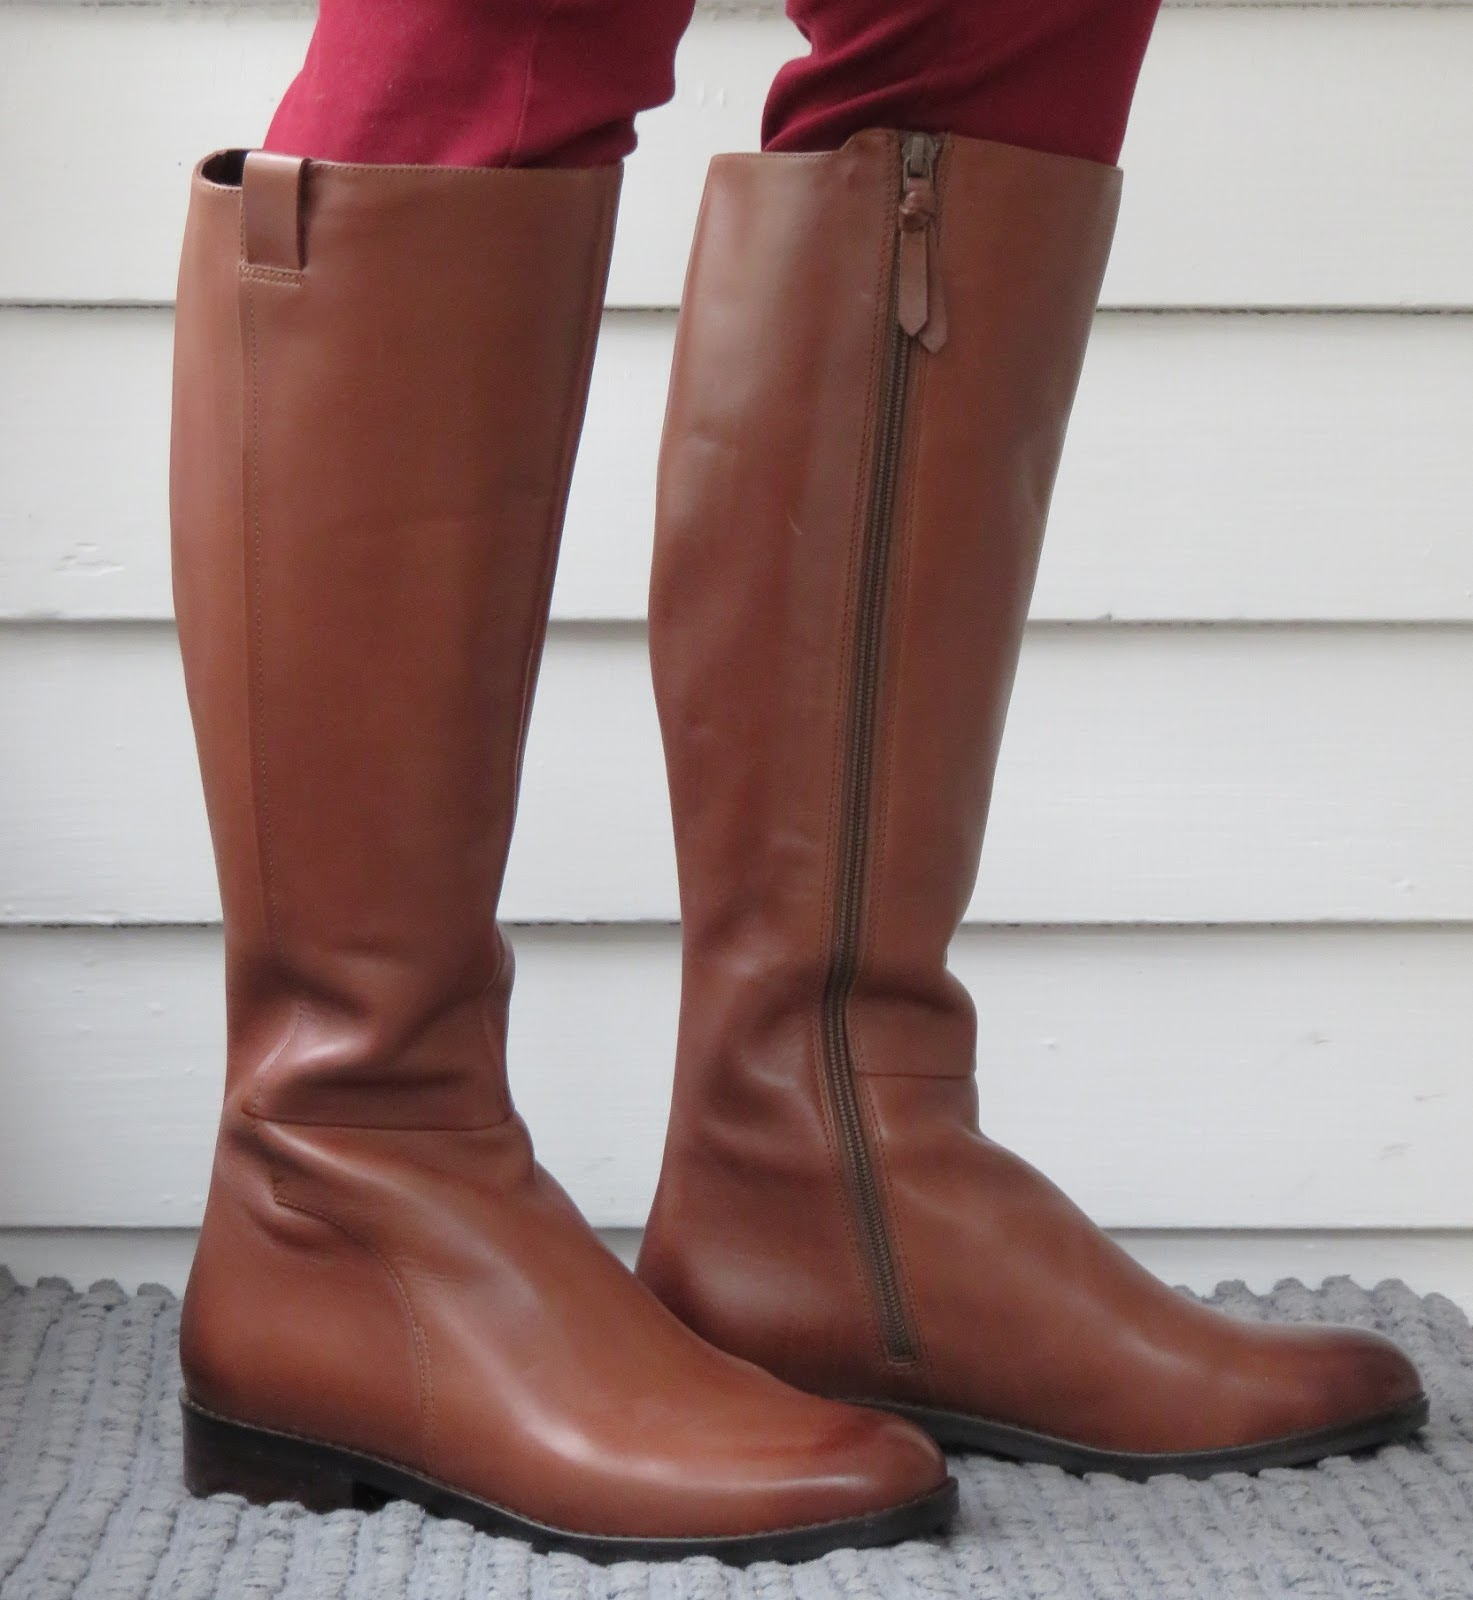 Cole Haan Katrina. Welcome to my last skinny calf boots 2017 review! This  boot was flagged at Nordstrom as narrow calf by some reviewers, and because  the ...